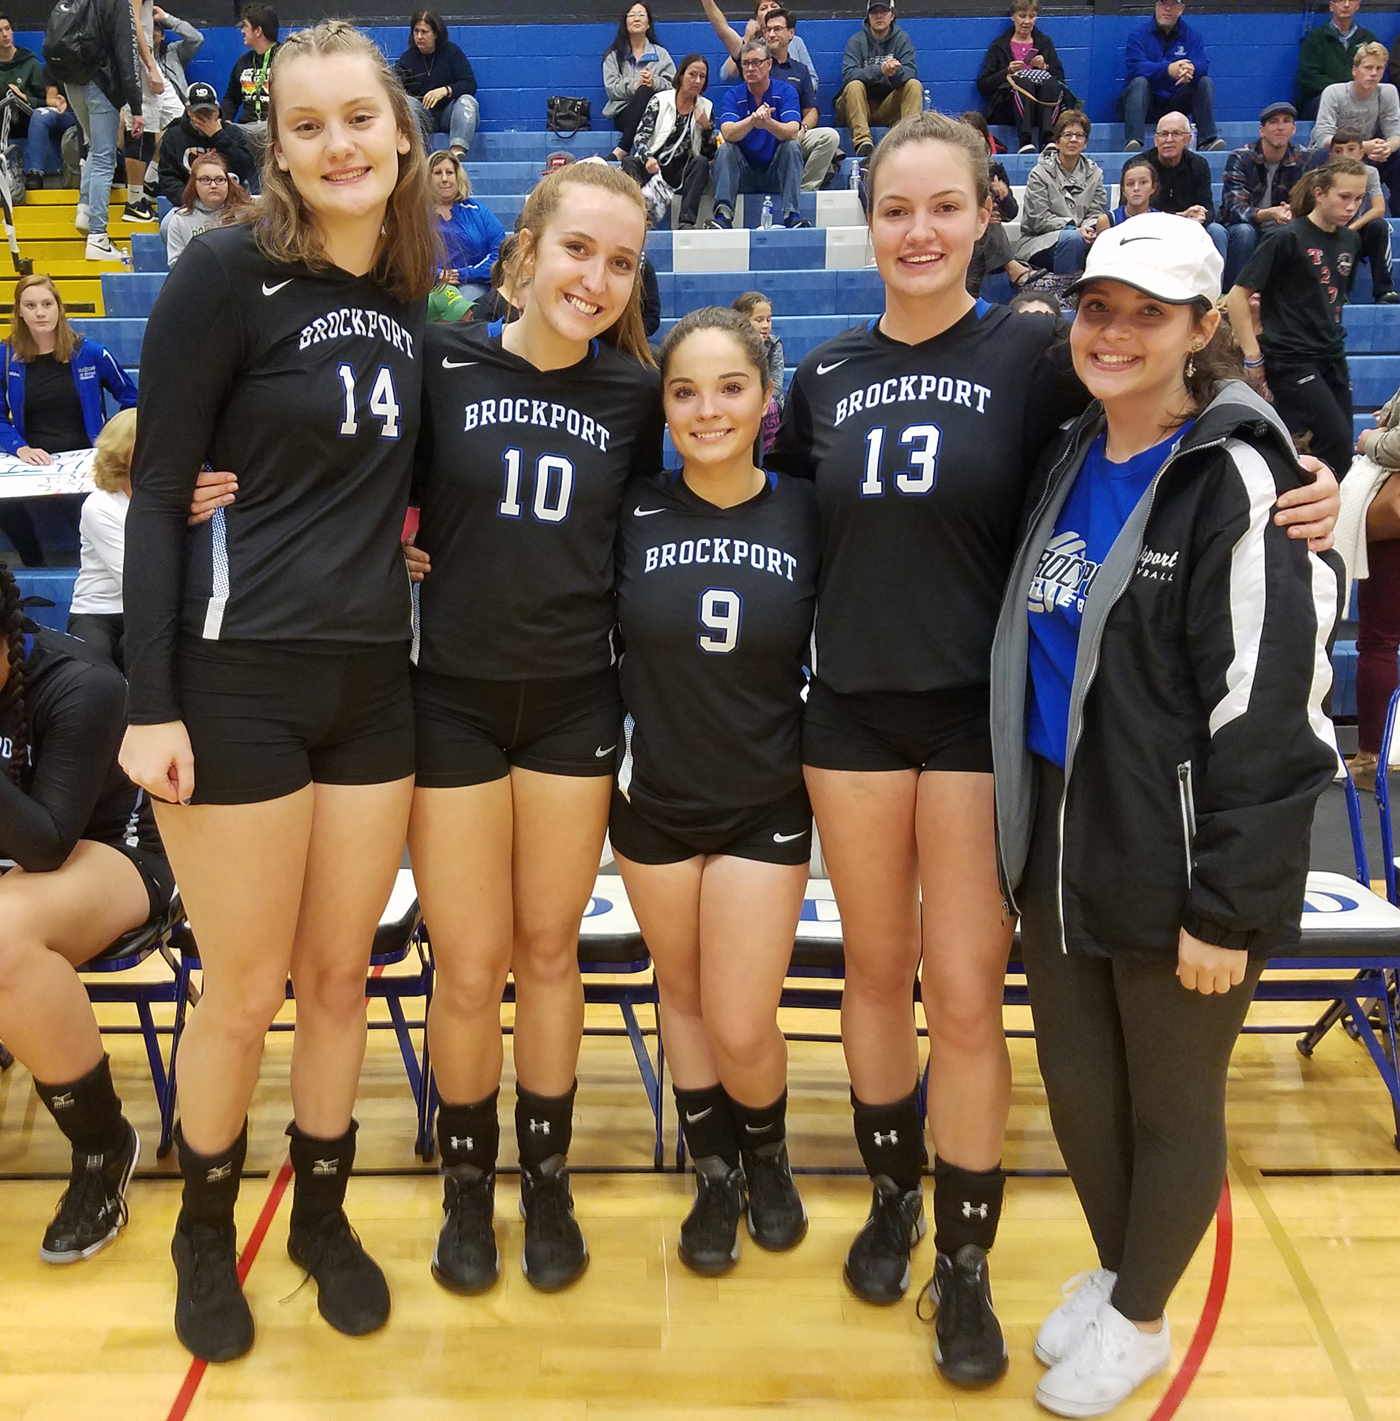 Left to right, Elizabeth Schultheis, Julia Pacitto, Kenzie Carter, Kate Kenward and Morgan Wright. Provided photo